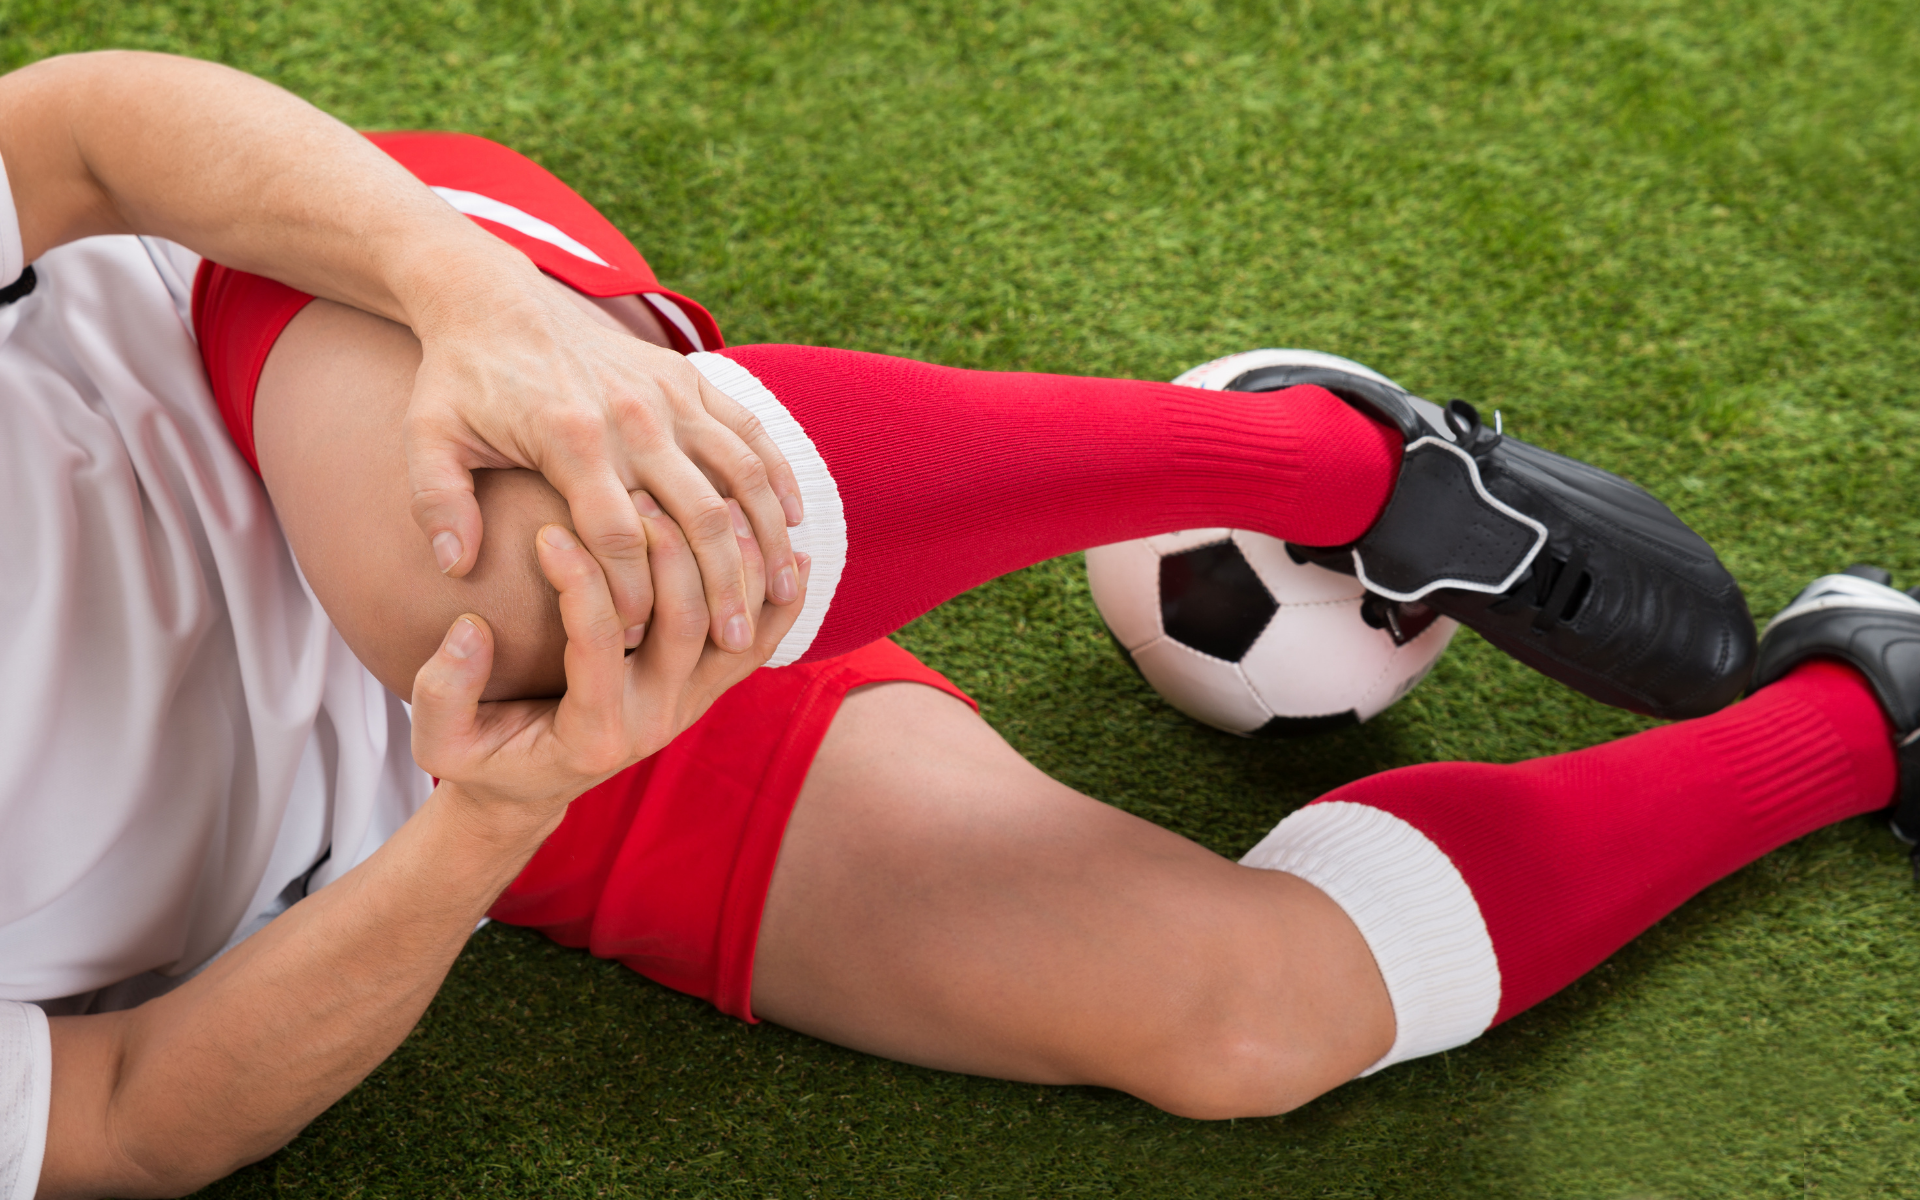 FAQ's about sports injuries that our clinic gets on a day-to-day basis